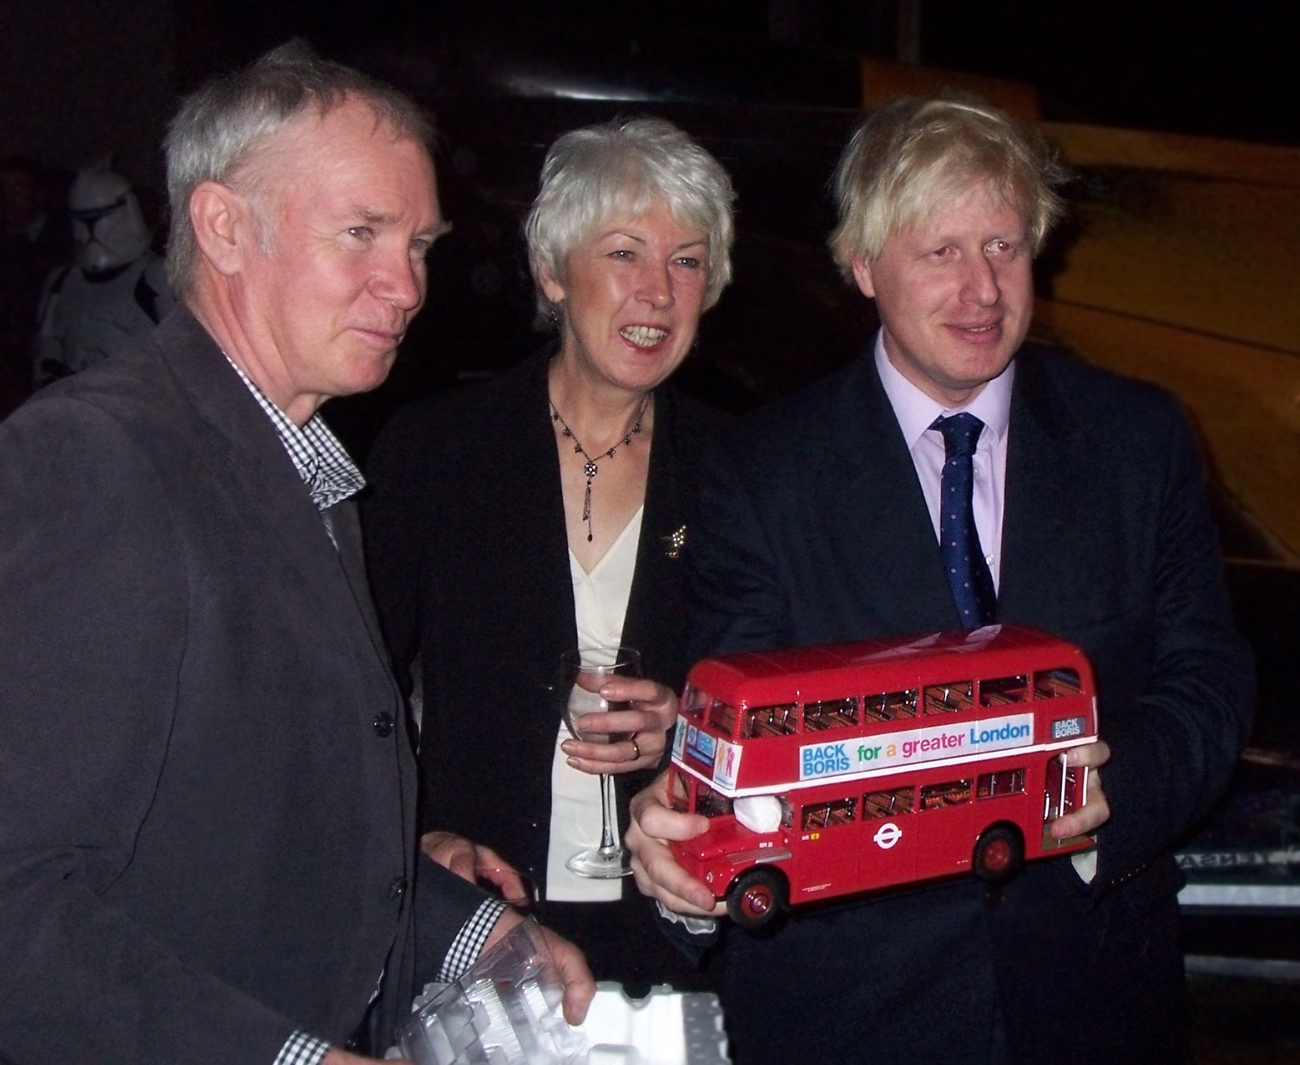 Boris_Johnson_-holding_a_red_model_bus_-2007